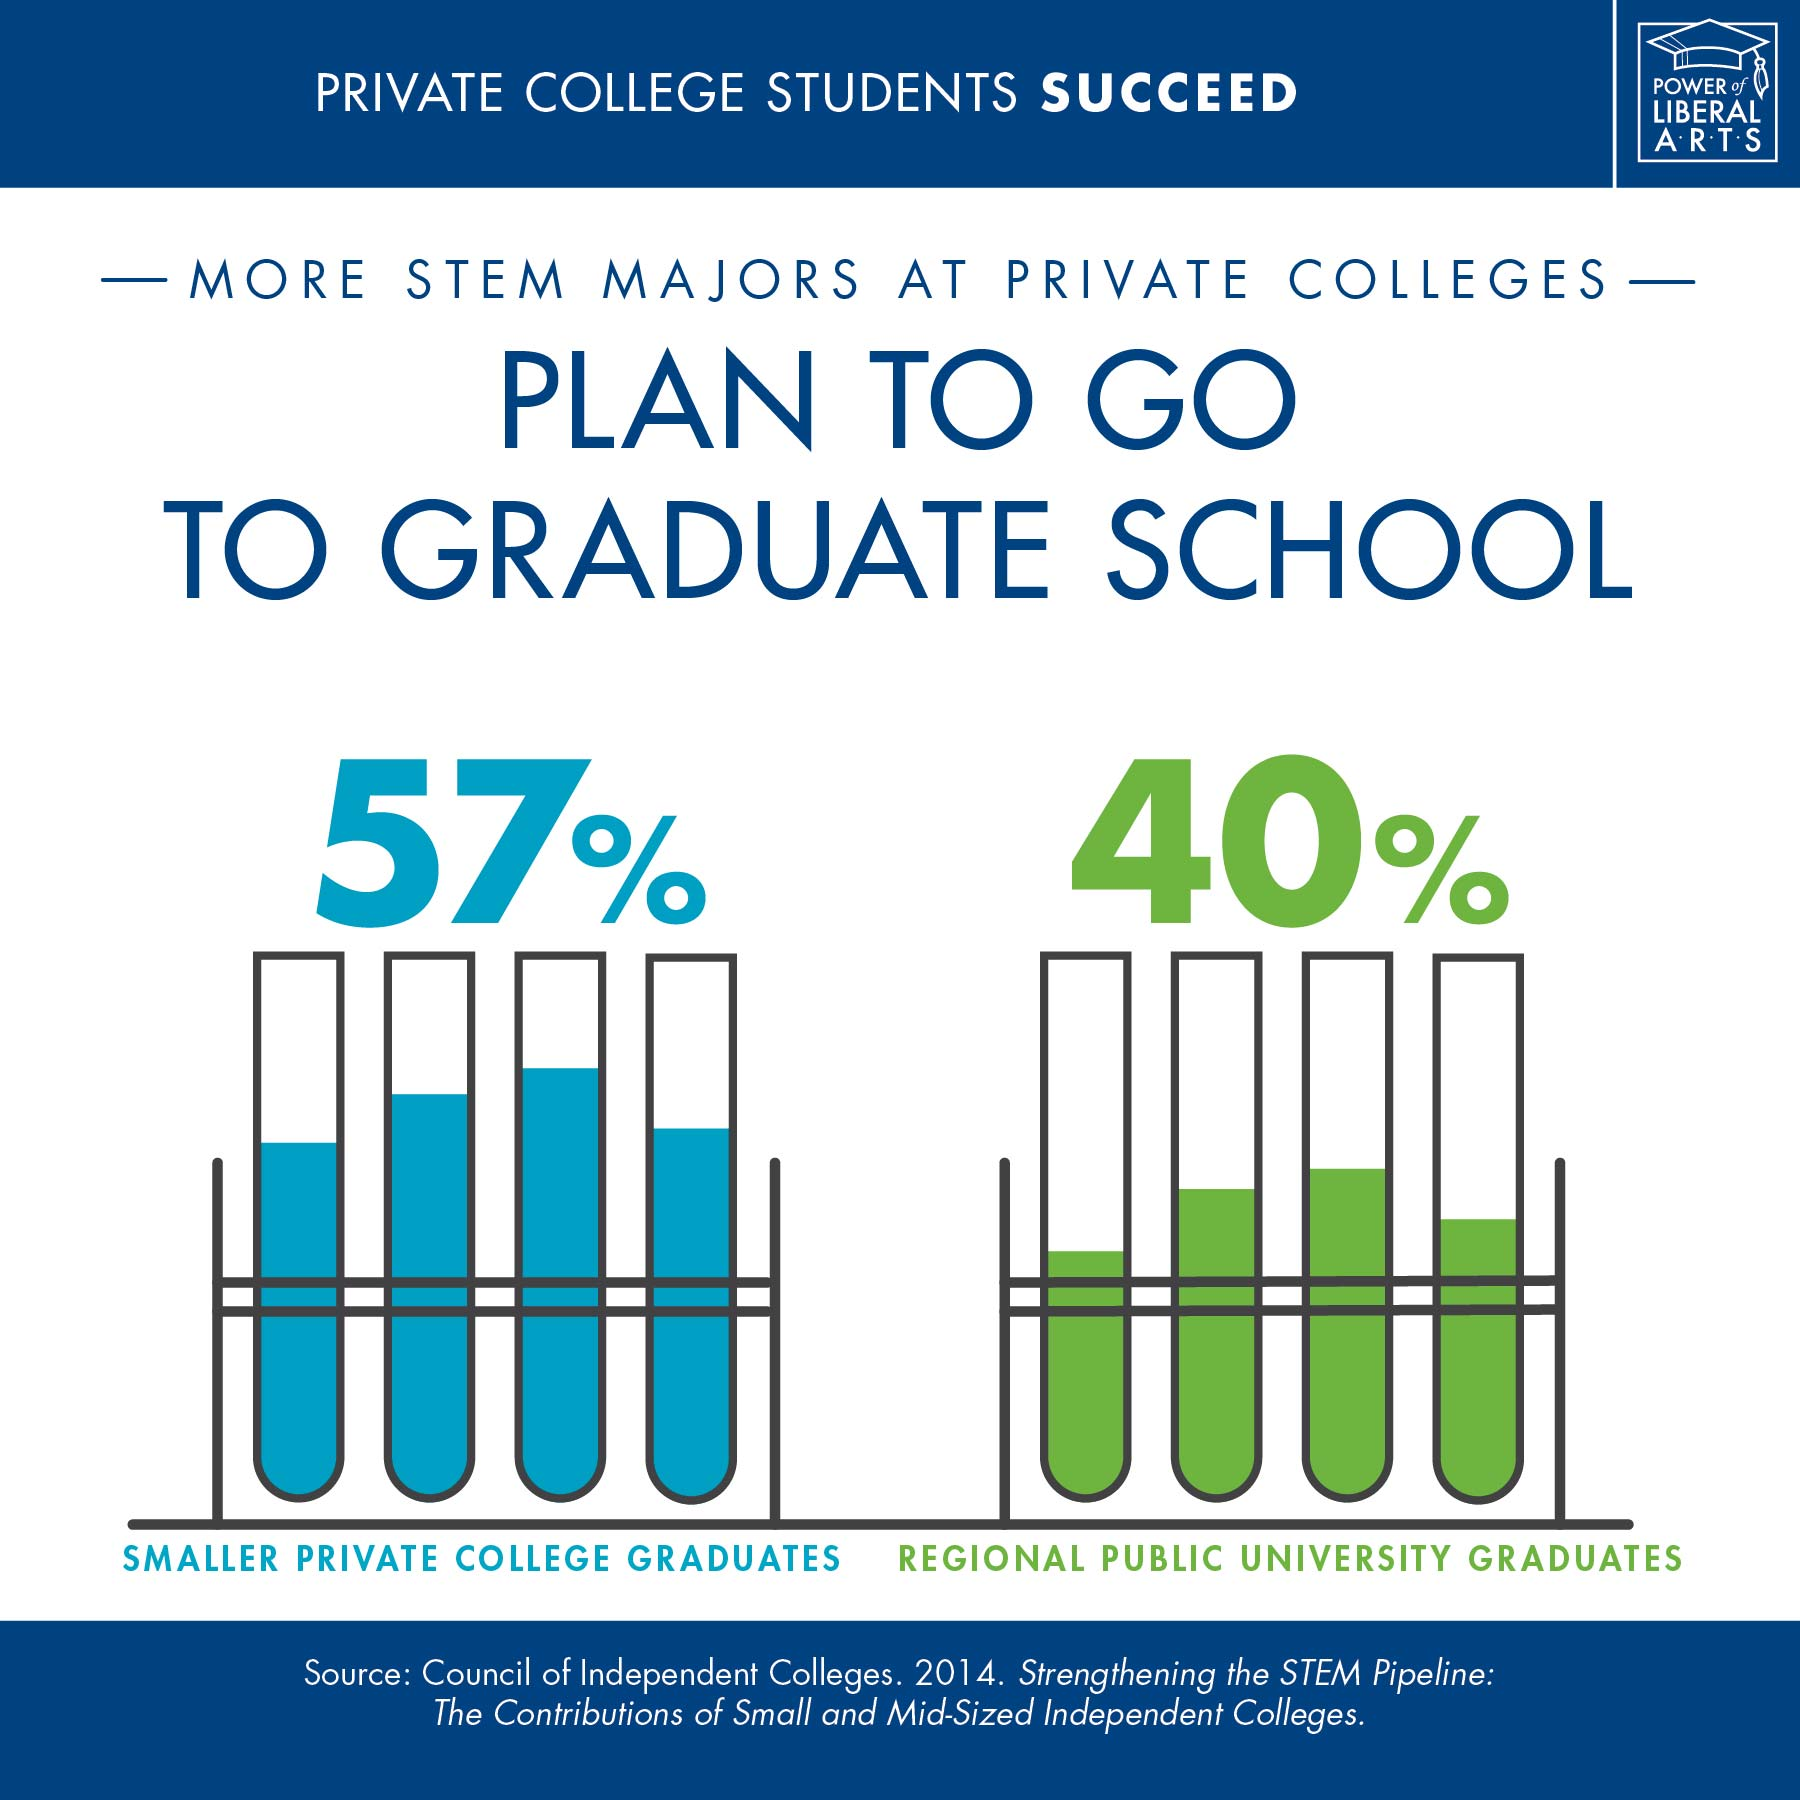 Infographic: More STEM majors at private colleges plan to go to graduate school